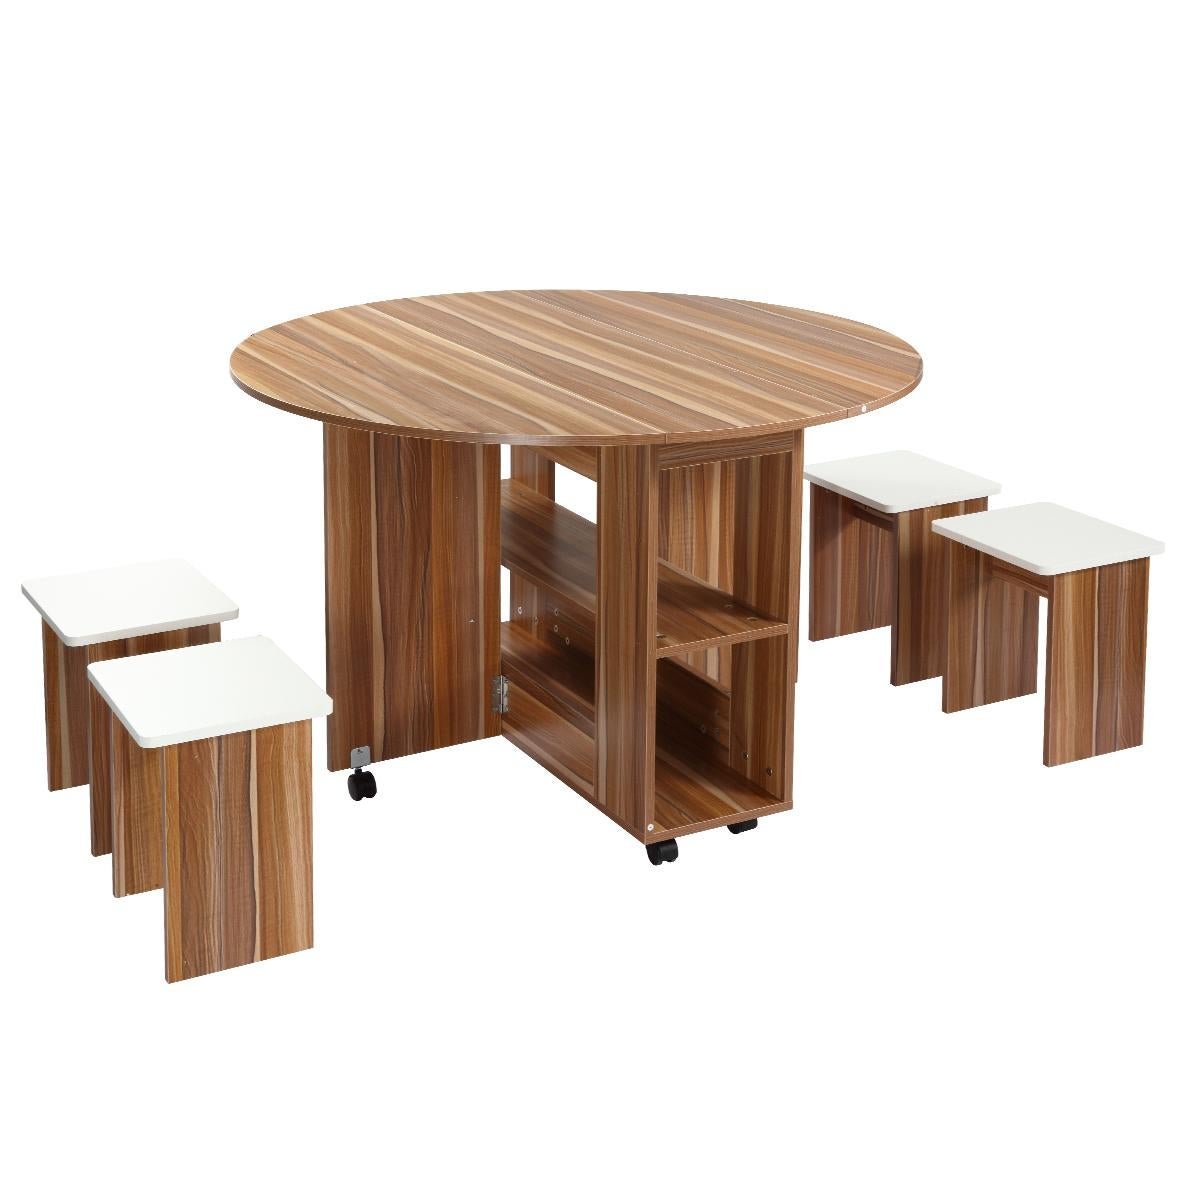 Wooden Folding Dining Table And 4 Chairs Set Round Table With Wheels Matt Blatt